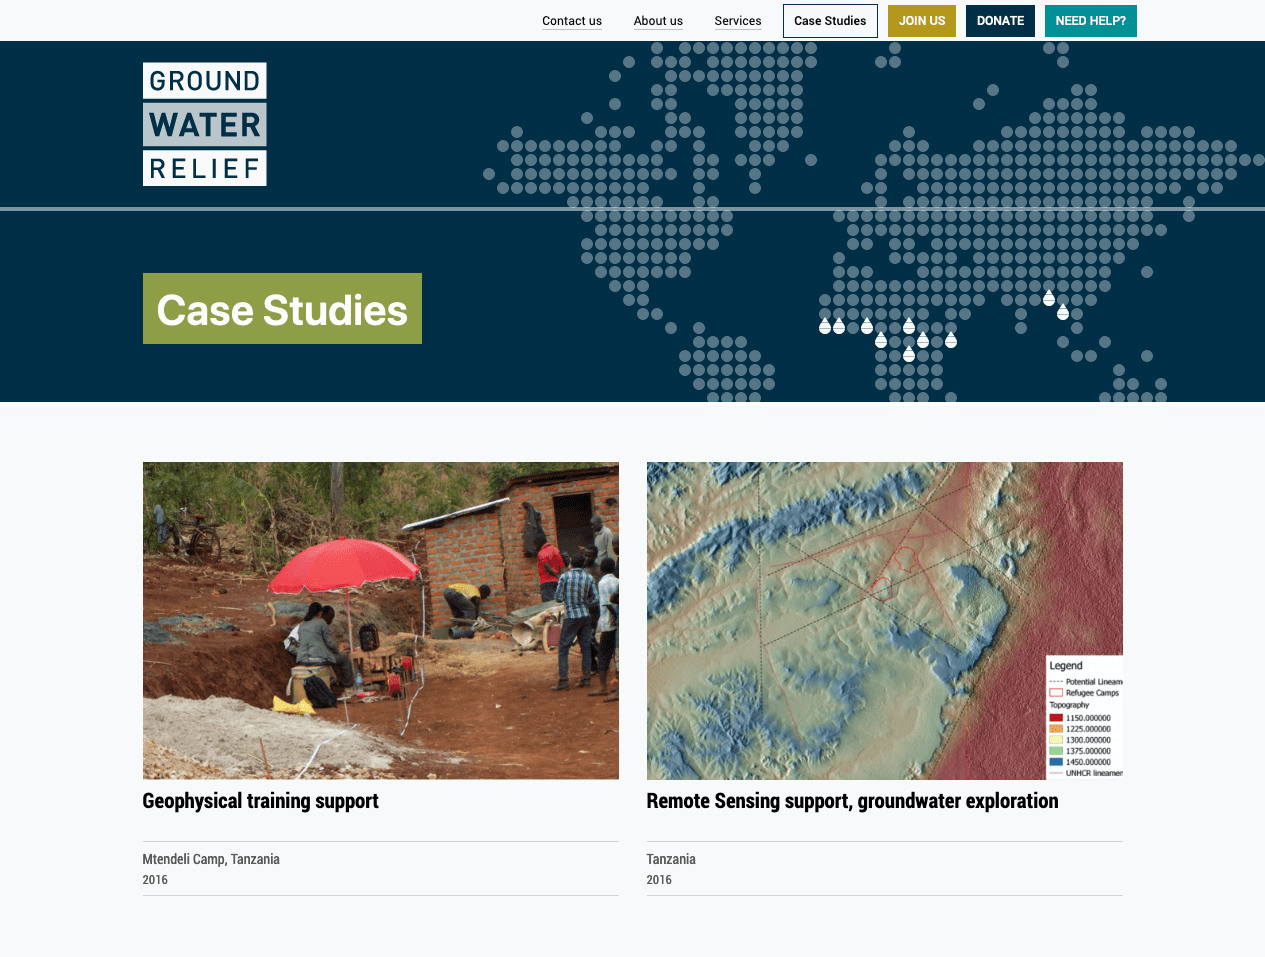 Screenshot from of Groundwater Relief Case Studies page